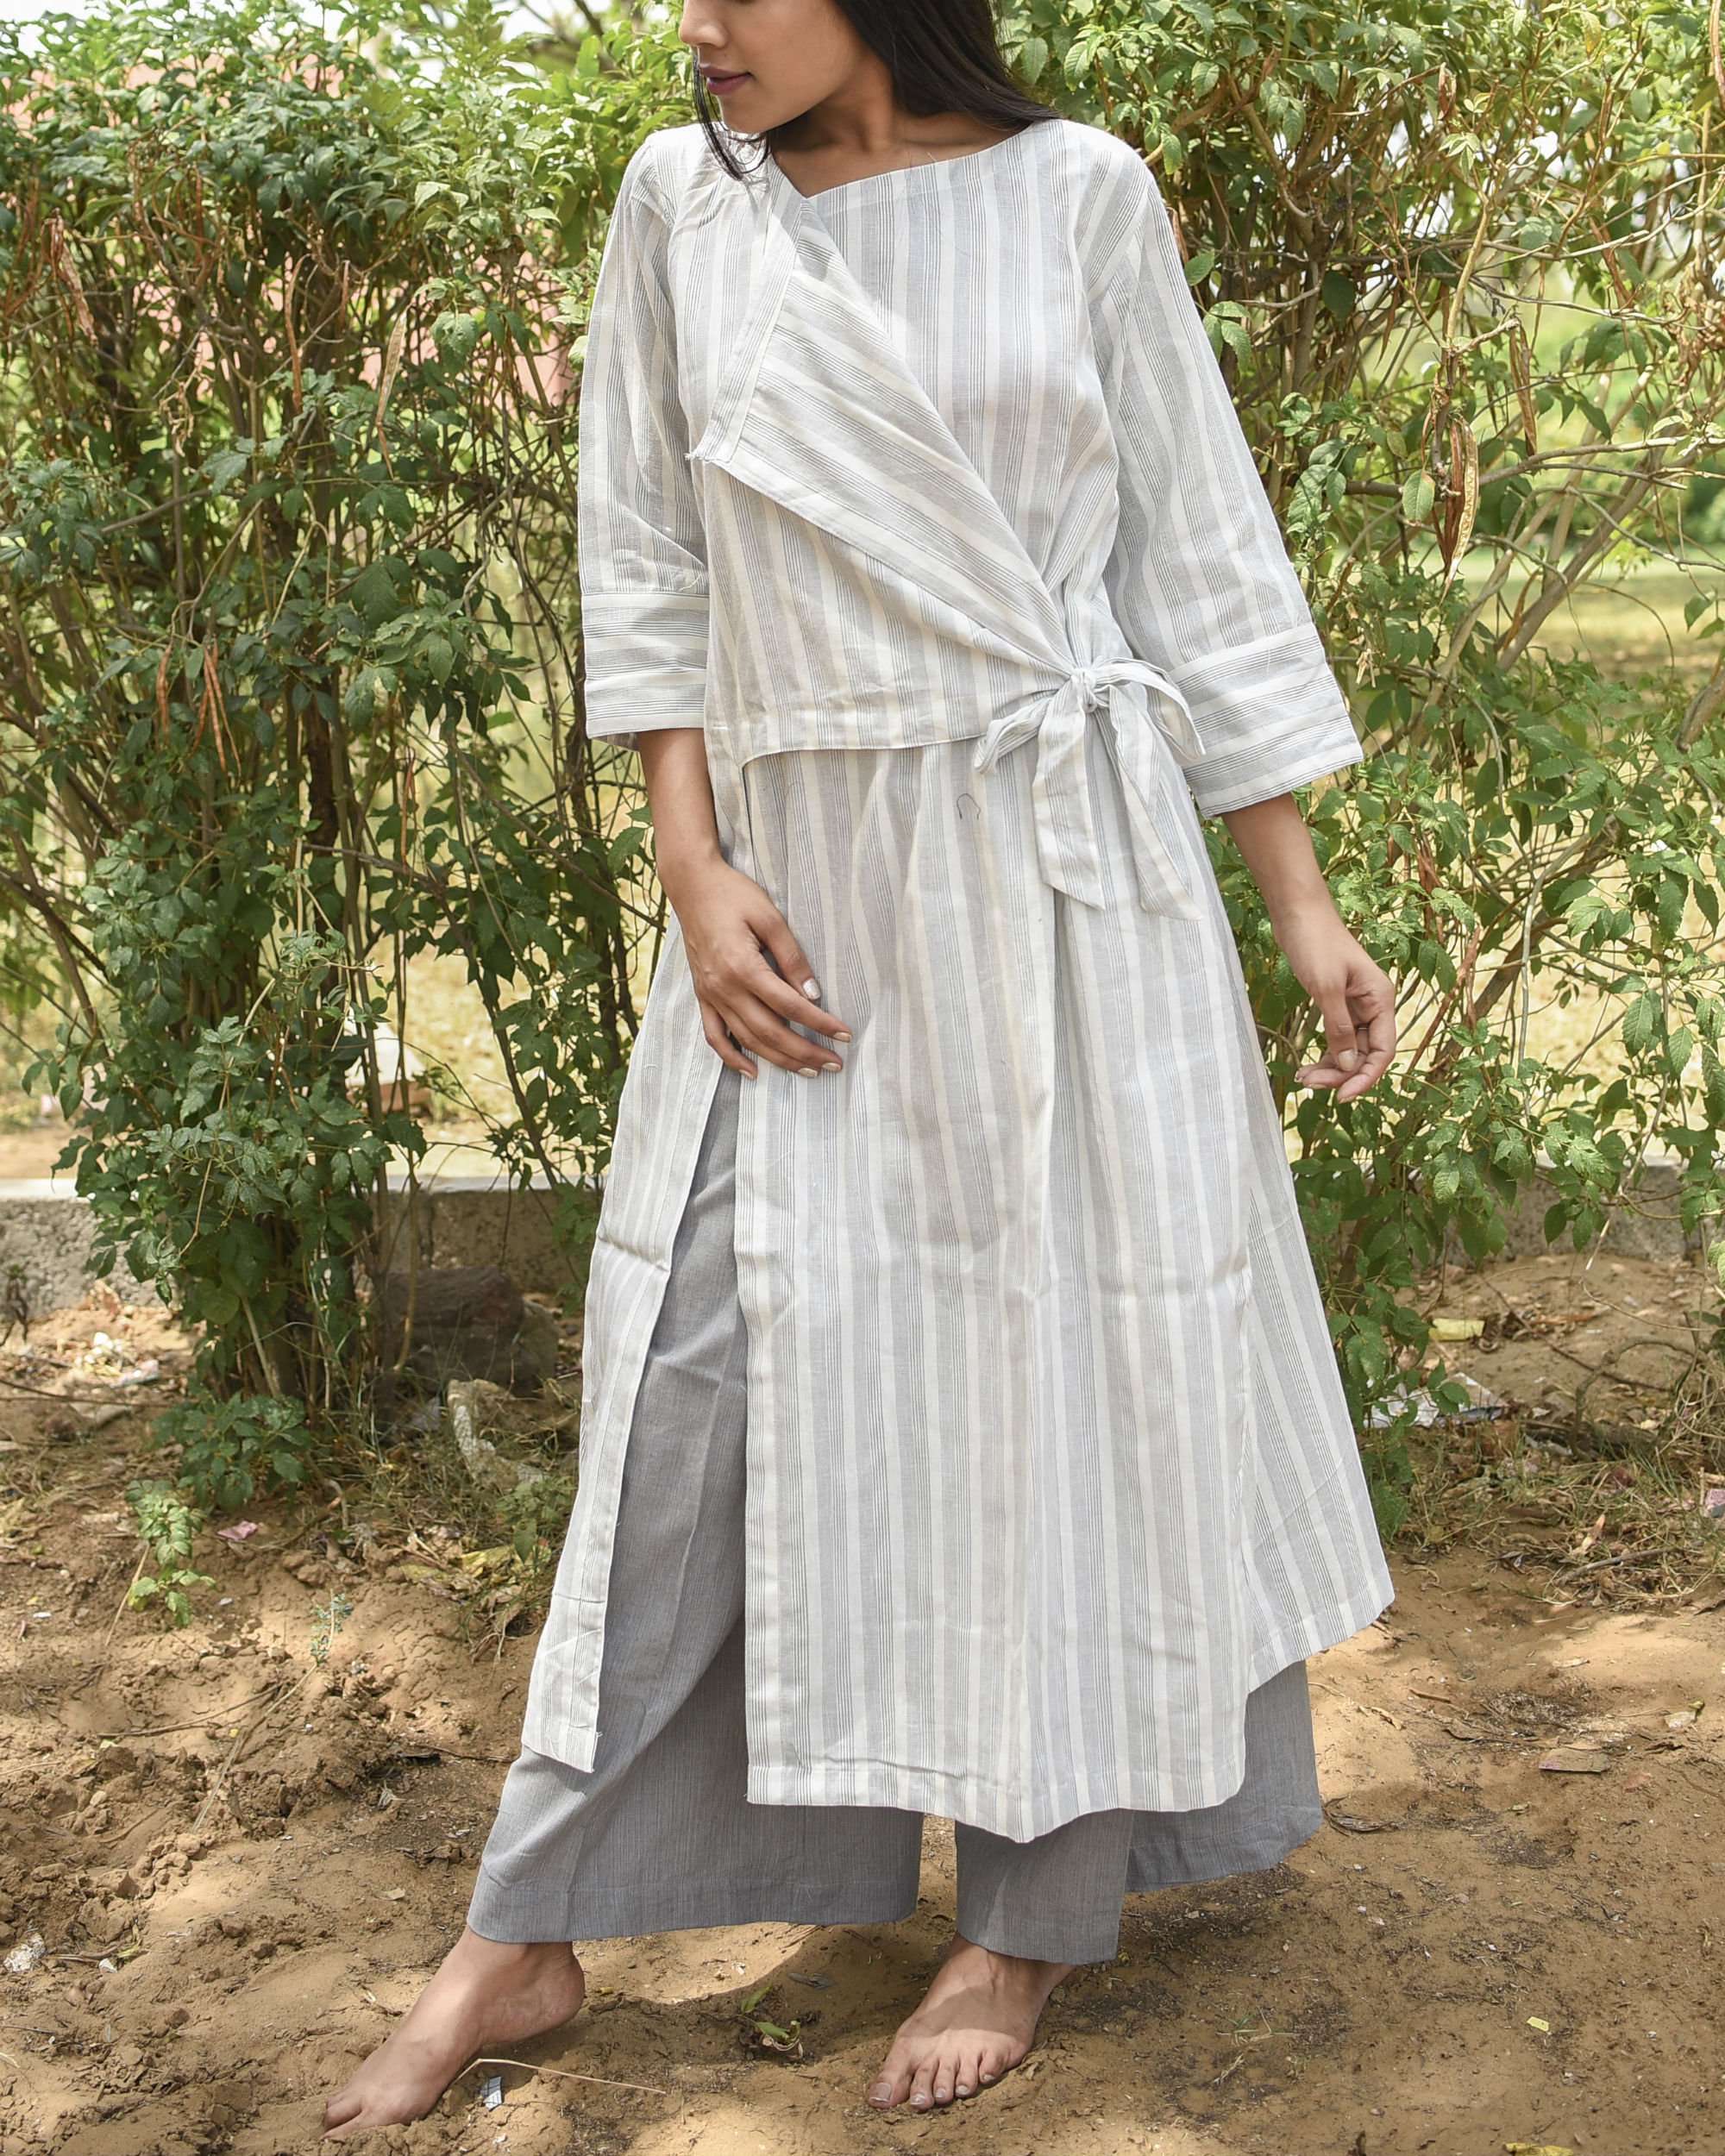 Off white side tie up dress